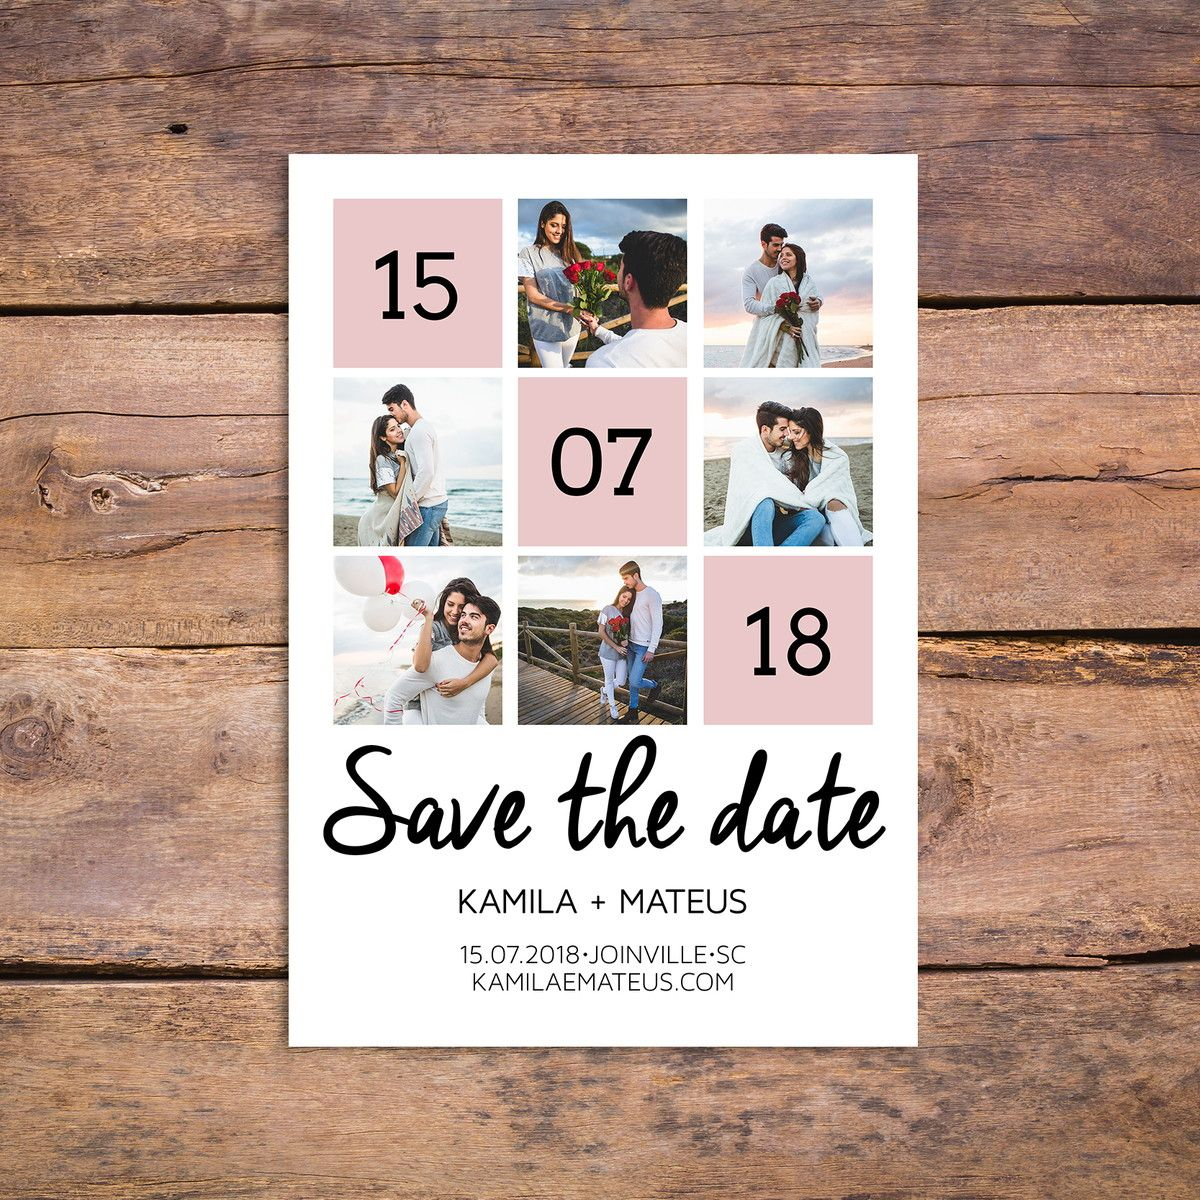 25 diy save the dates ideas to remember the most historic events of diy save the date ideas for your wedding event tags free diy save the date rustic diy save the dates homemad diy save the date diy save the date junglespirit Gallery